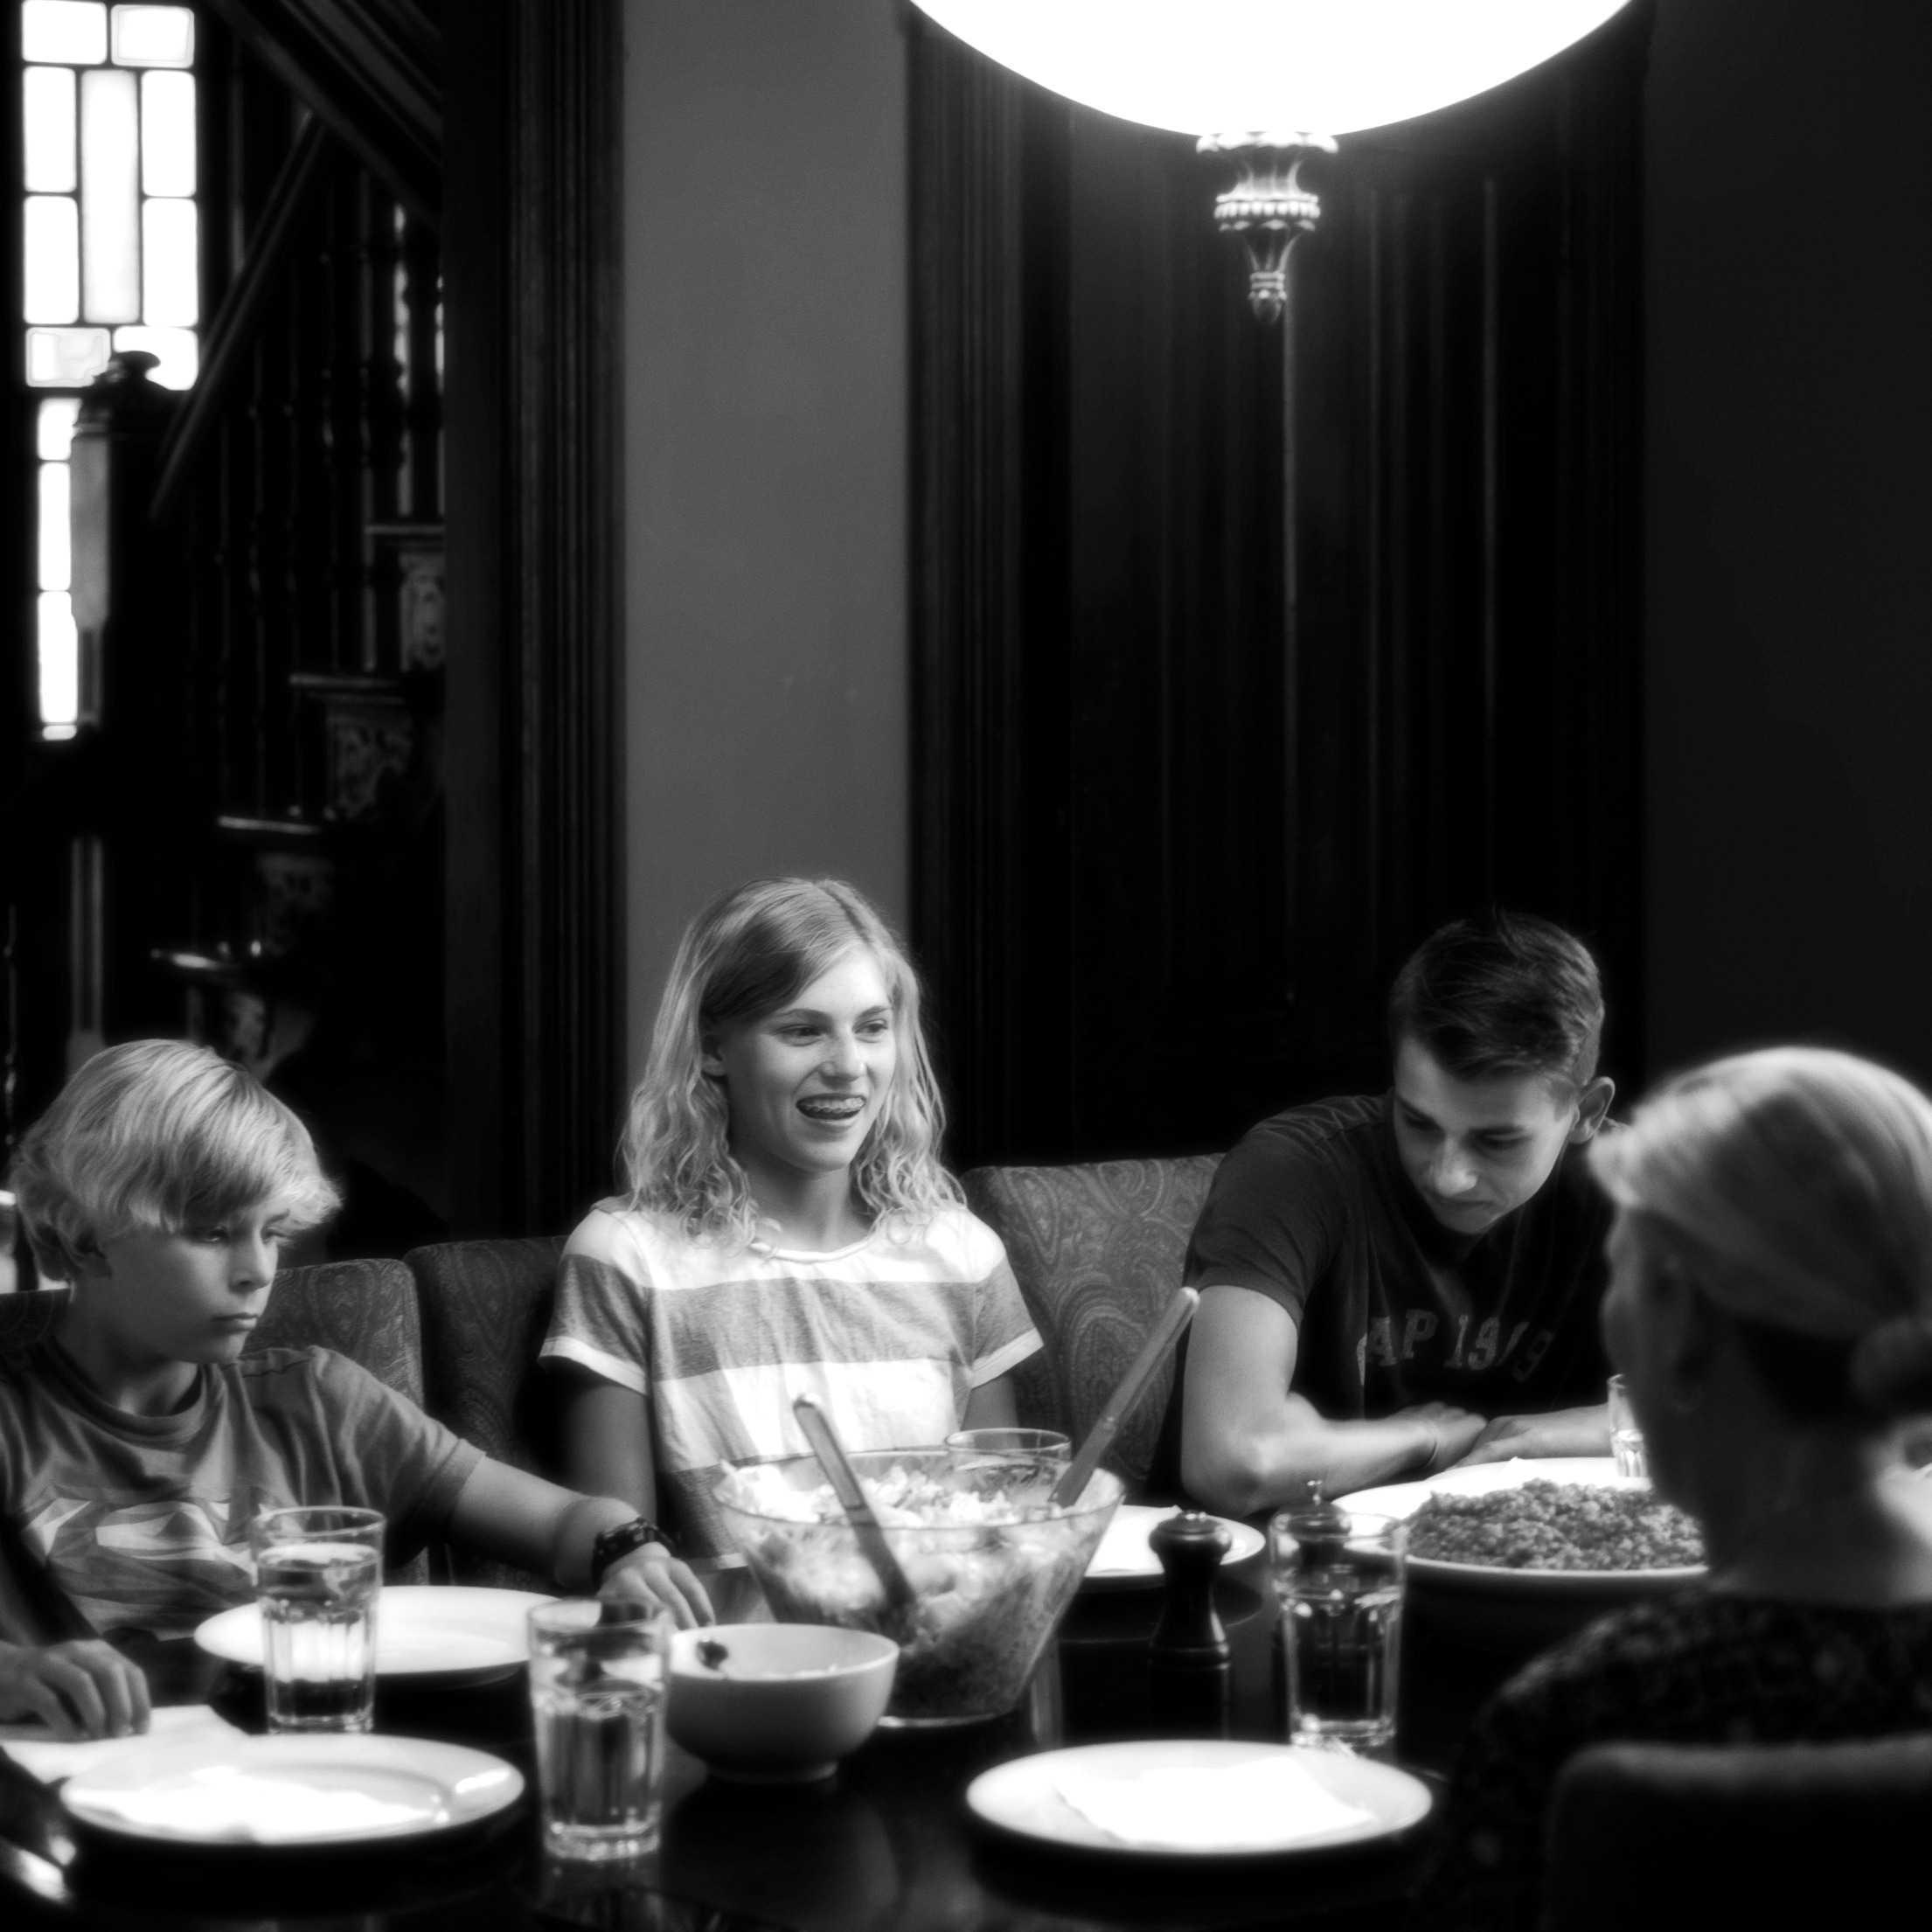 5 Questions to Ask at the Dinner Table